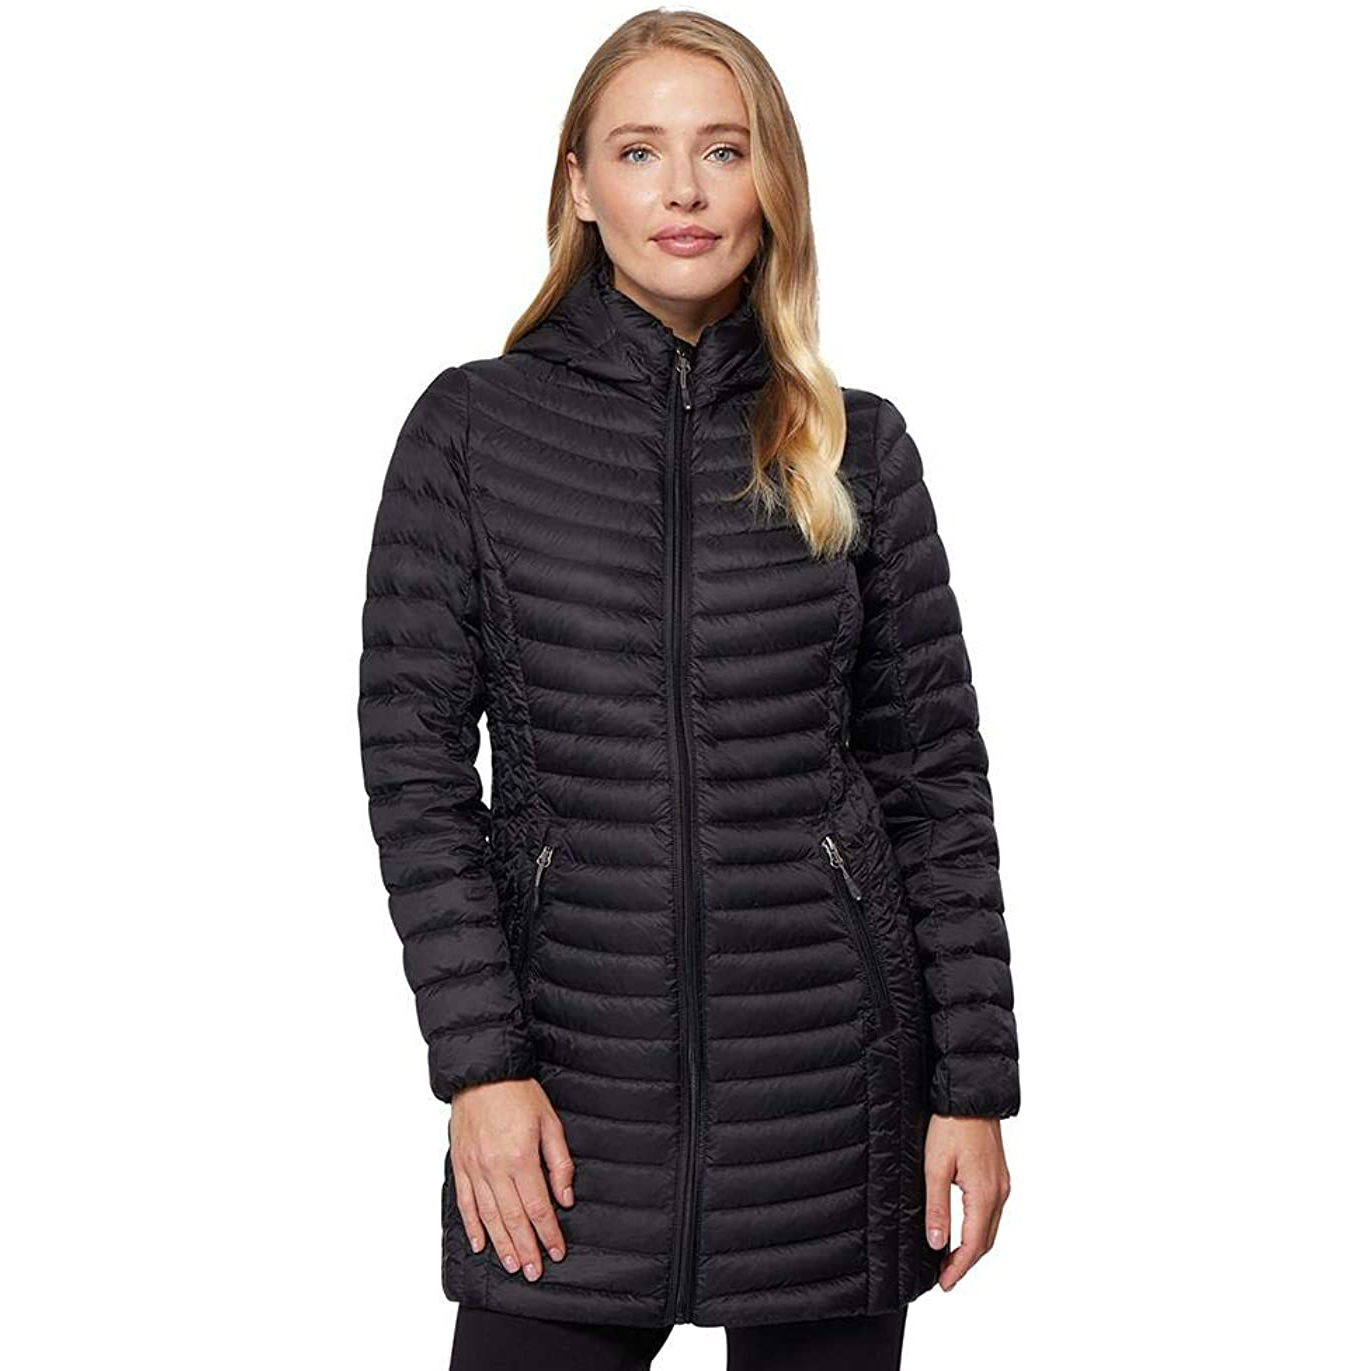 32-degrees-womens-ultra-light-packable-down-three-quarter-long-jacket